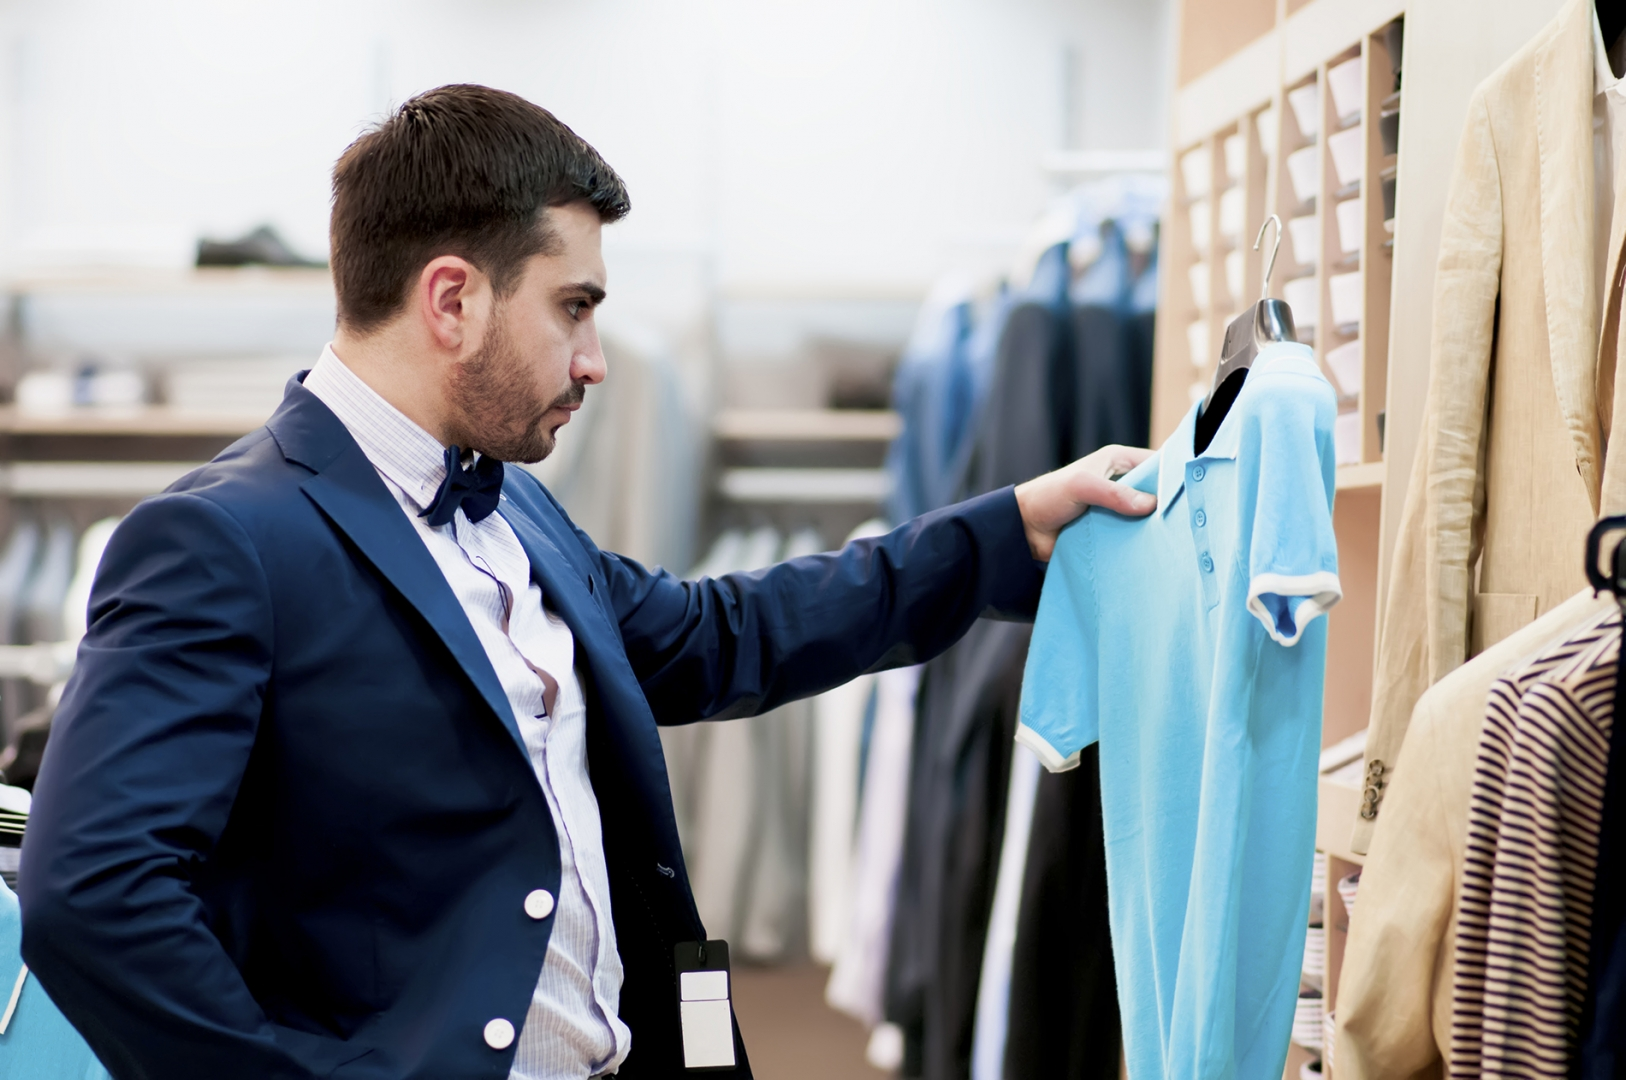 man browsing shirts on a rack